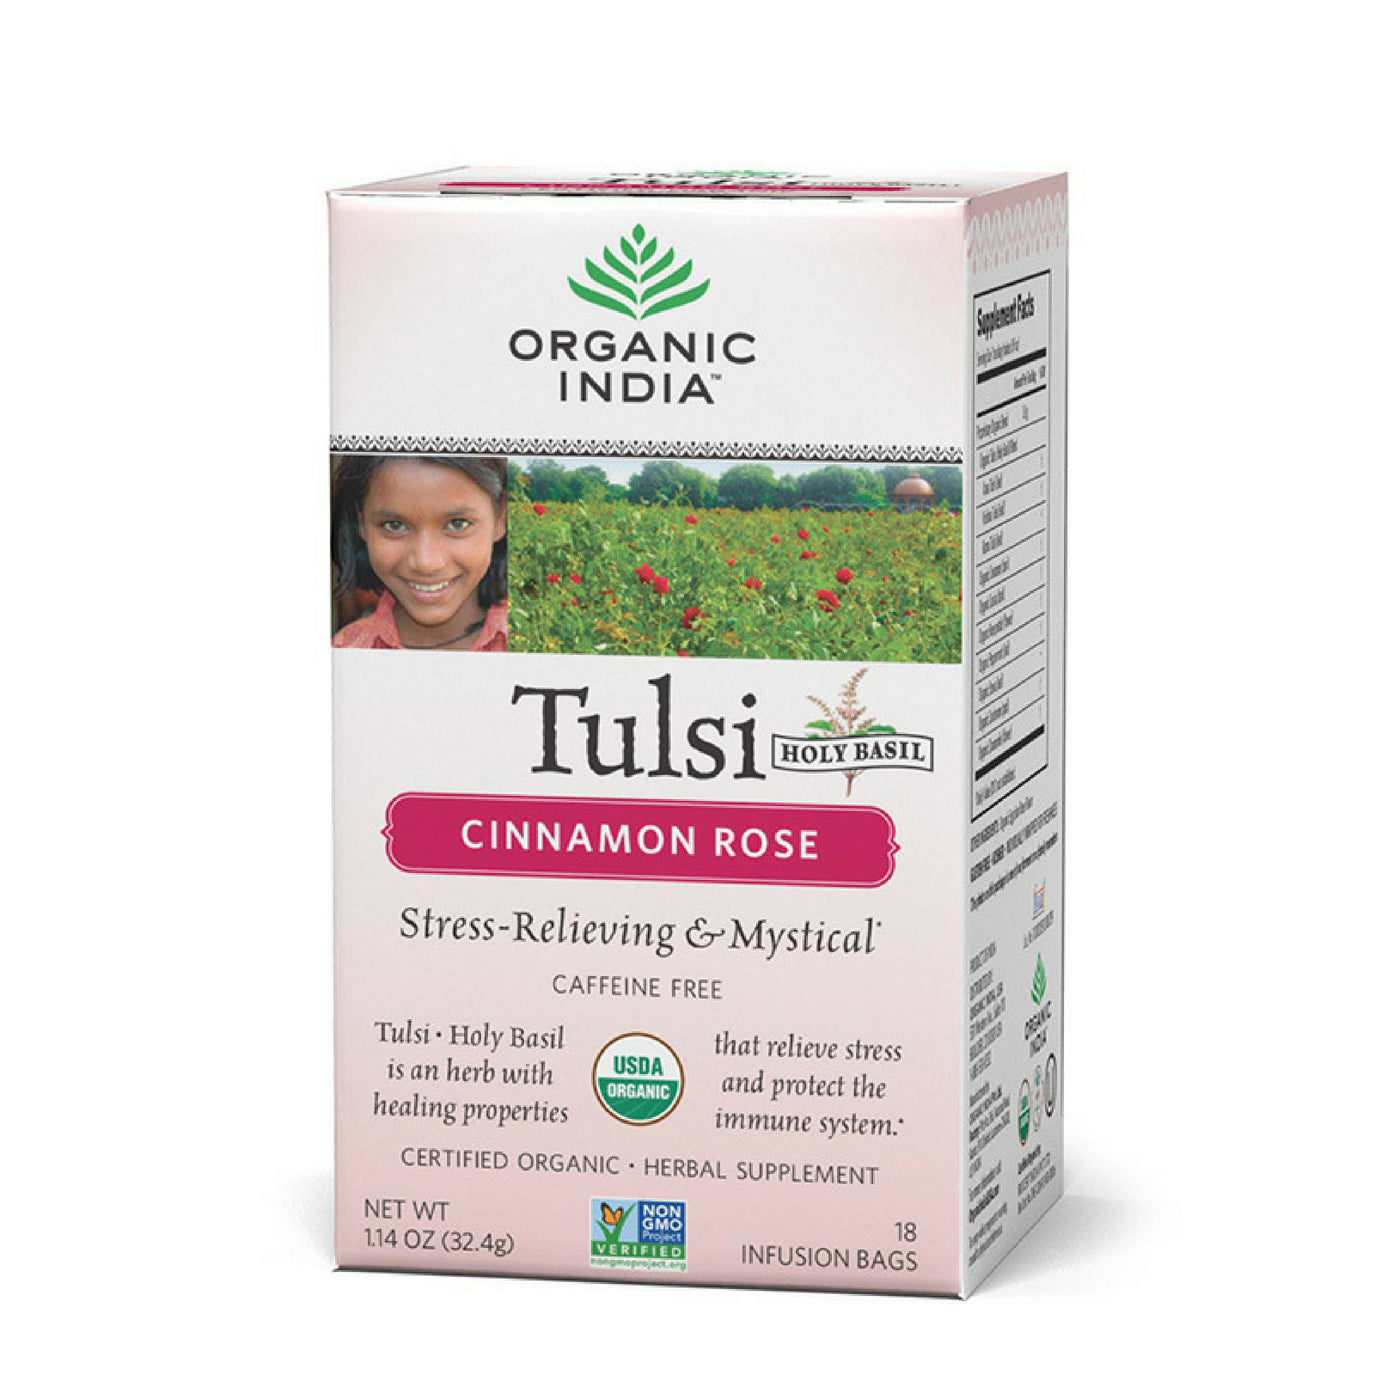 Organic India Tulsi Holy Basil Tea, Cinnamon Rose, Caffeine-Free